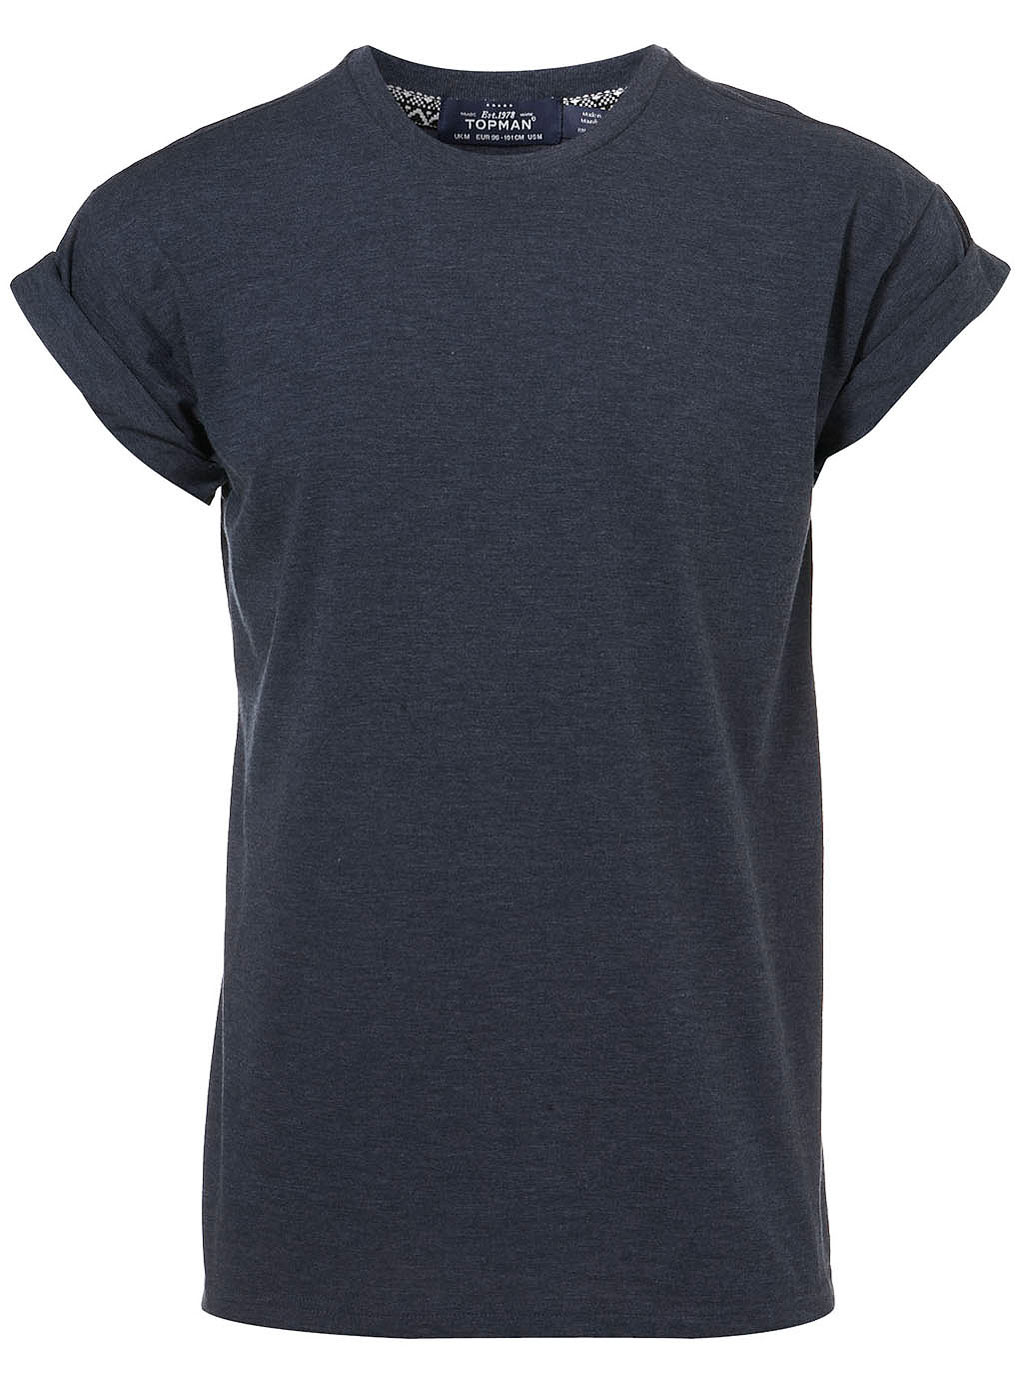 Black t shirt rolled up sleeves - Navy High Roll Up Sleeve Tee